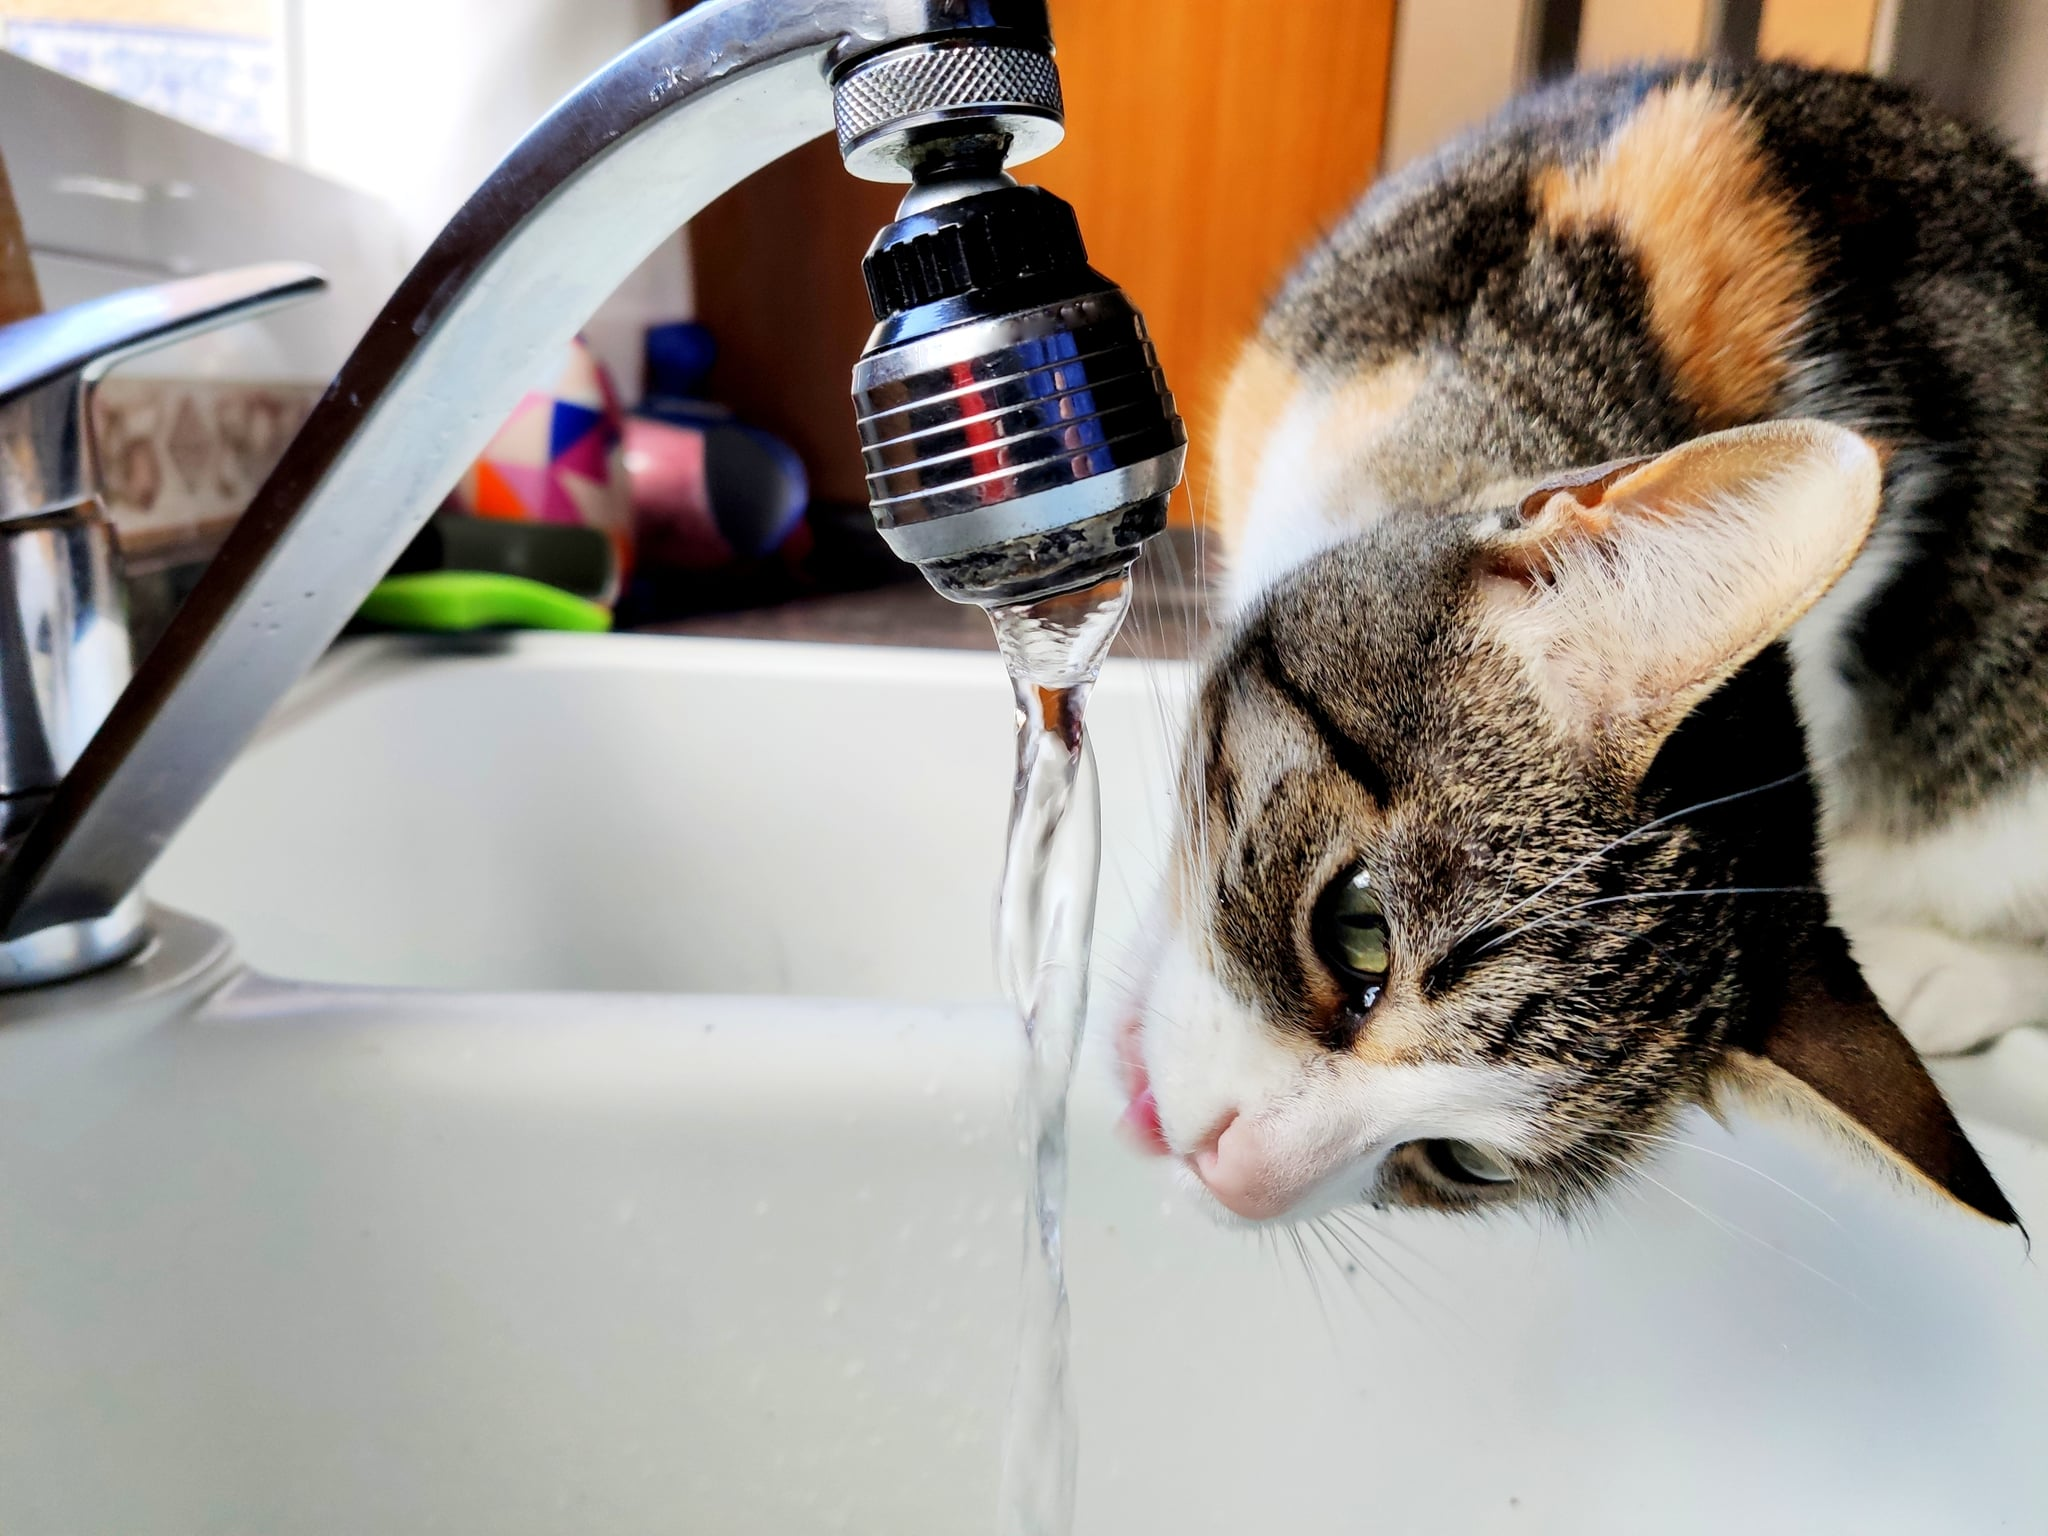 Cat drinking in the kitchen faucet of a family home